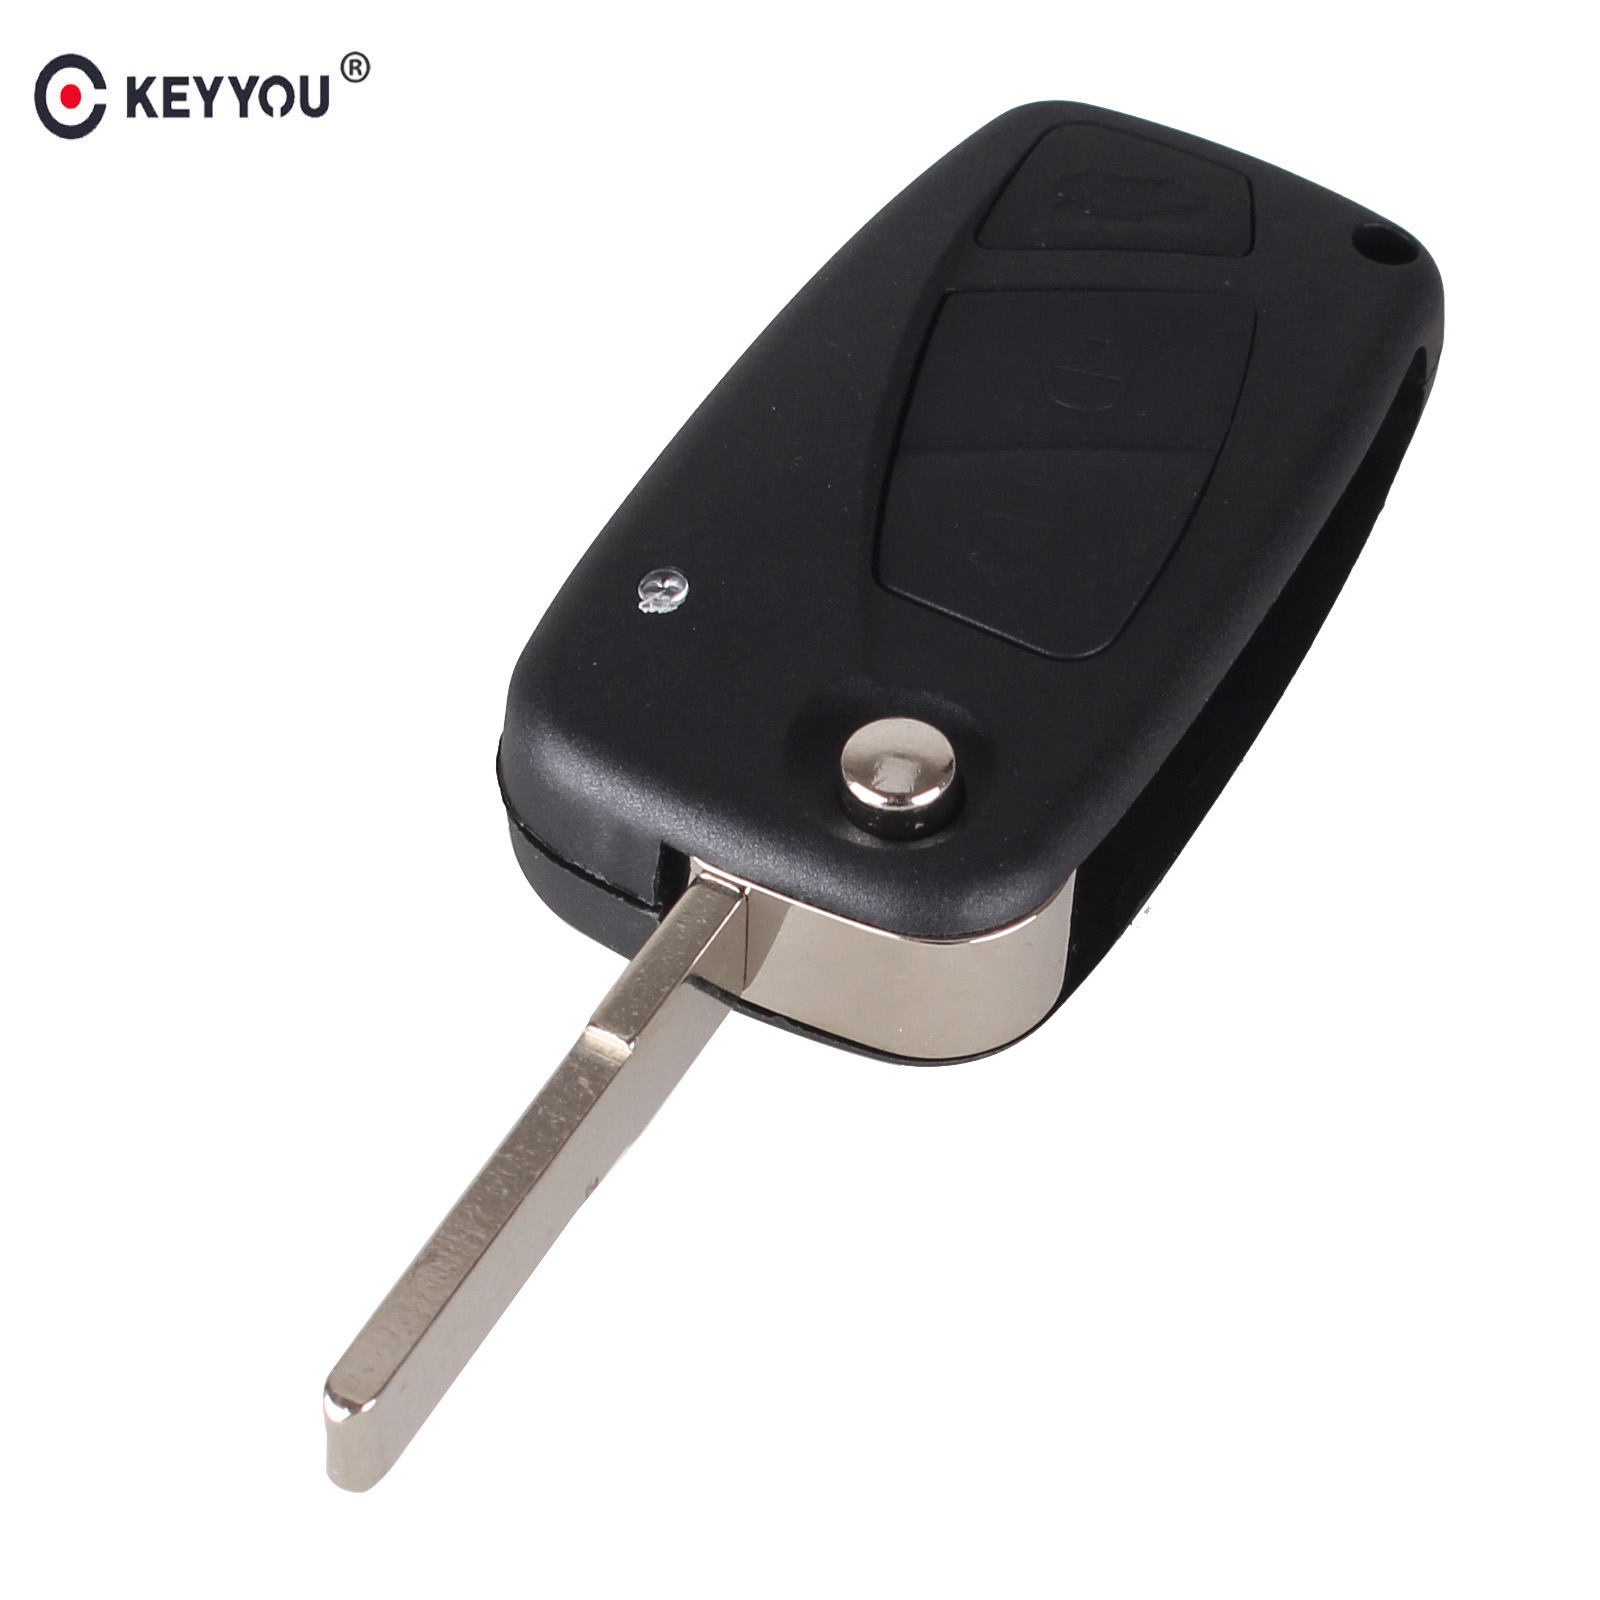 KEYYOU New 3 button 3 BTN For FIAT 3 button Punto Ducato Stilo Panda Flip Folding Remote Car Key Shell Case Cover SIP22 blade autewode remote key case shell cover fits for fiat 500 panda punto bravo car alarm keyless car accessories 1pc colorful page 9